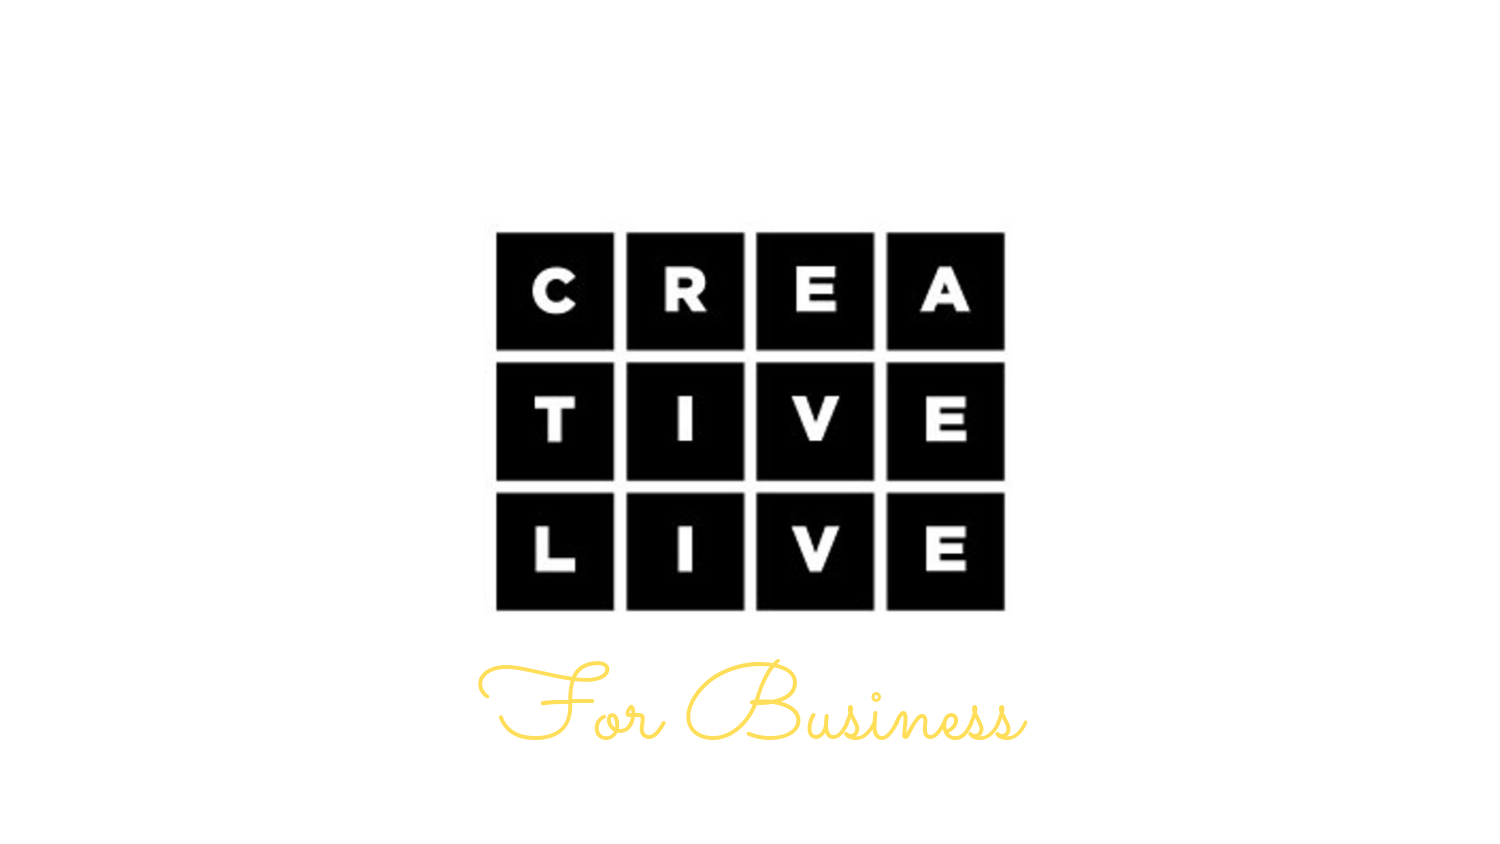 Employees as people. - CreativeLive for Business goes beyond training employees to help people be more creative, communicative, and resilient humans — at work and in life